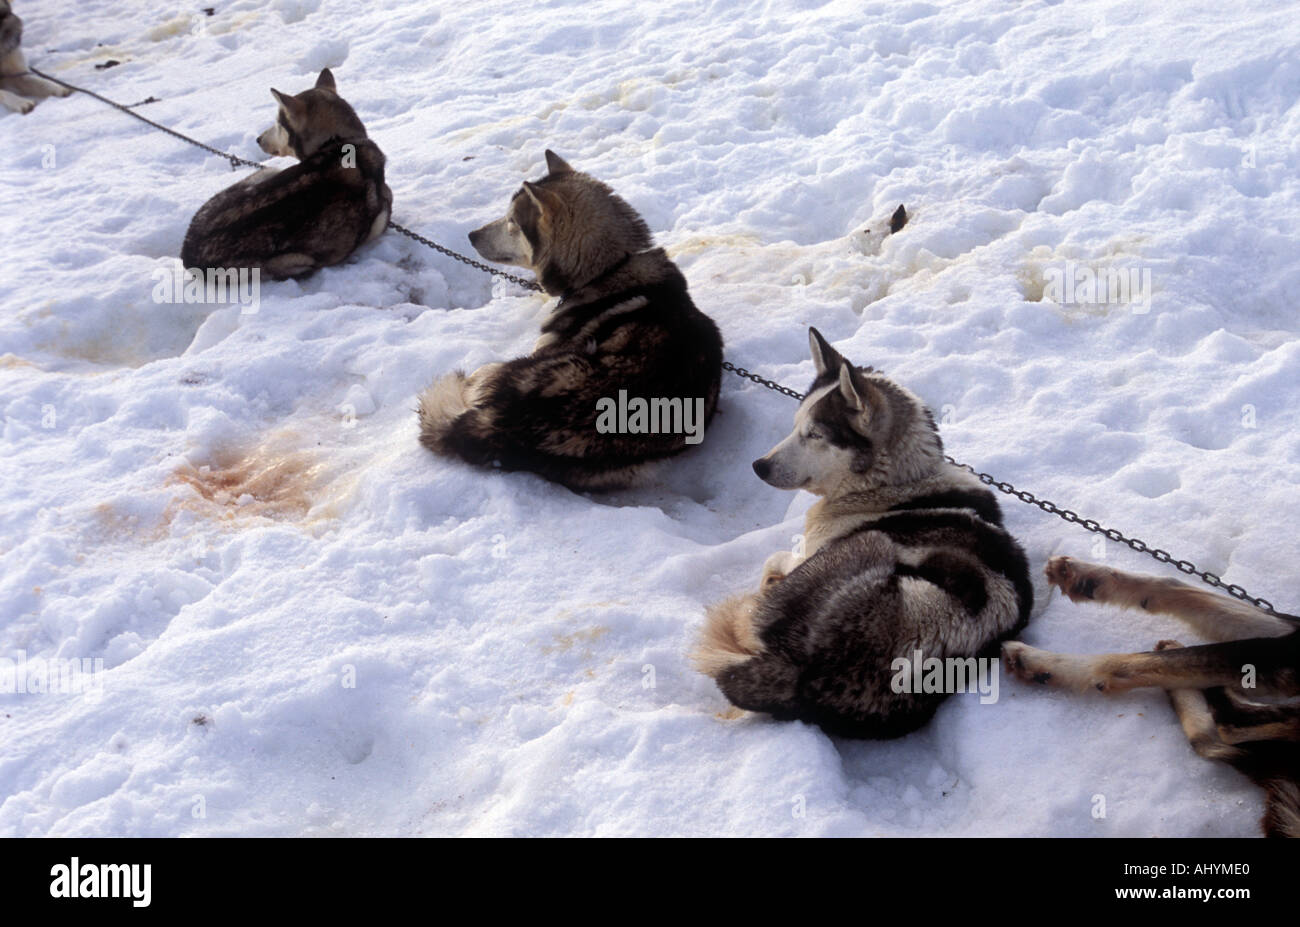 Feeding Husky sled dogs along the Kungsleden trail in Lappland Northern Sweden - Stock Image